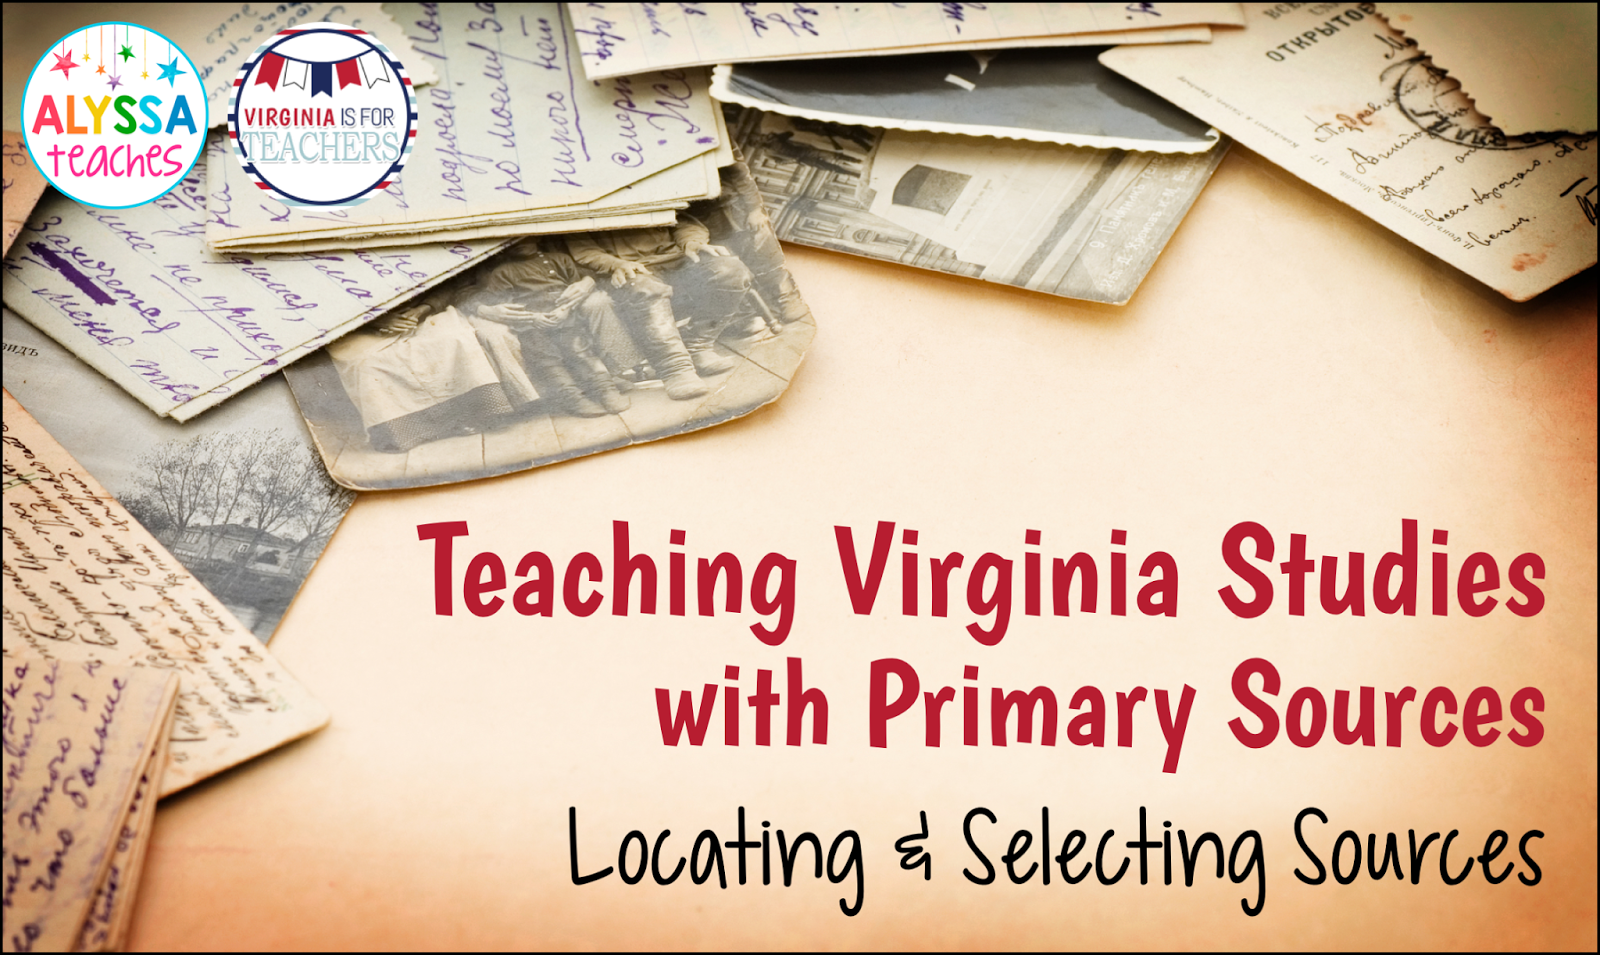 Resources and tips for locating and selecting primary sources to teach Virginia Studies